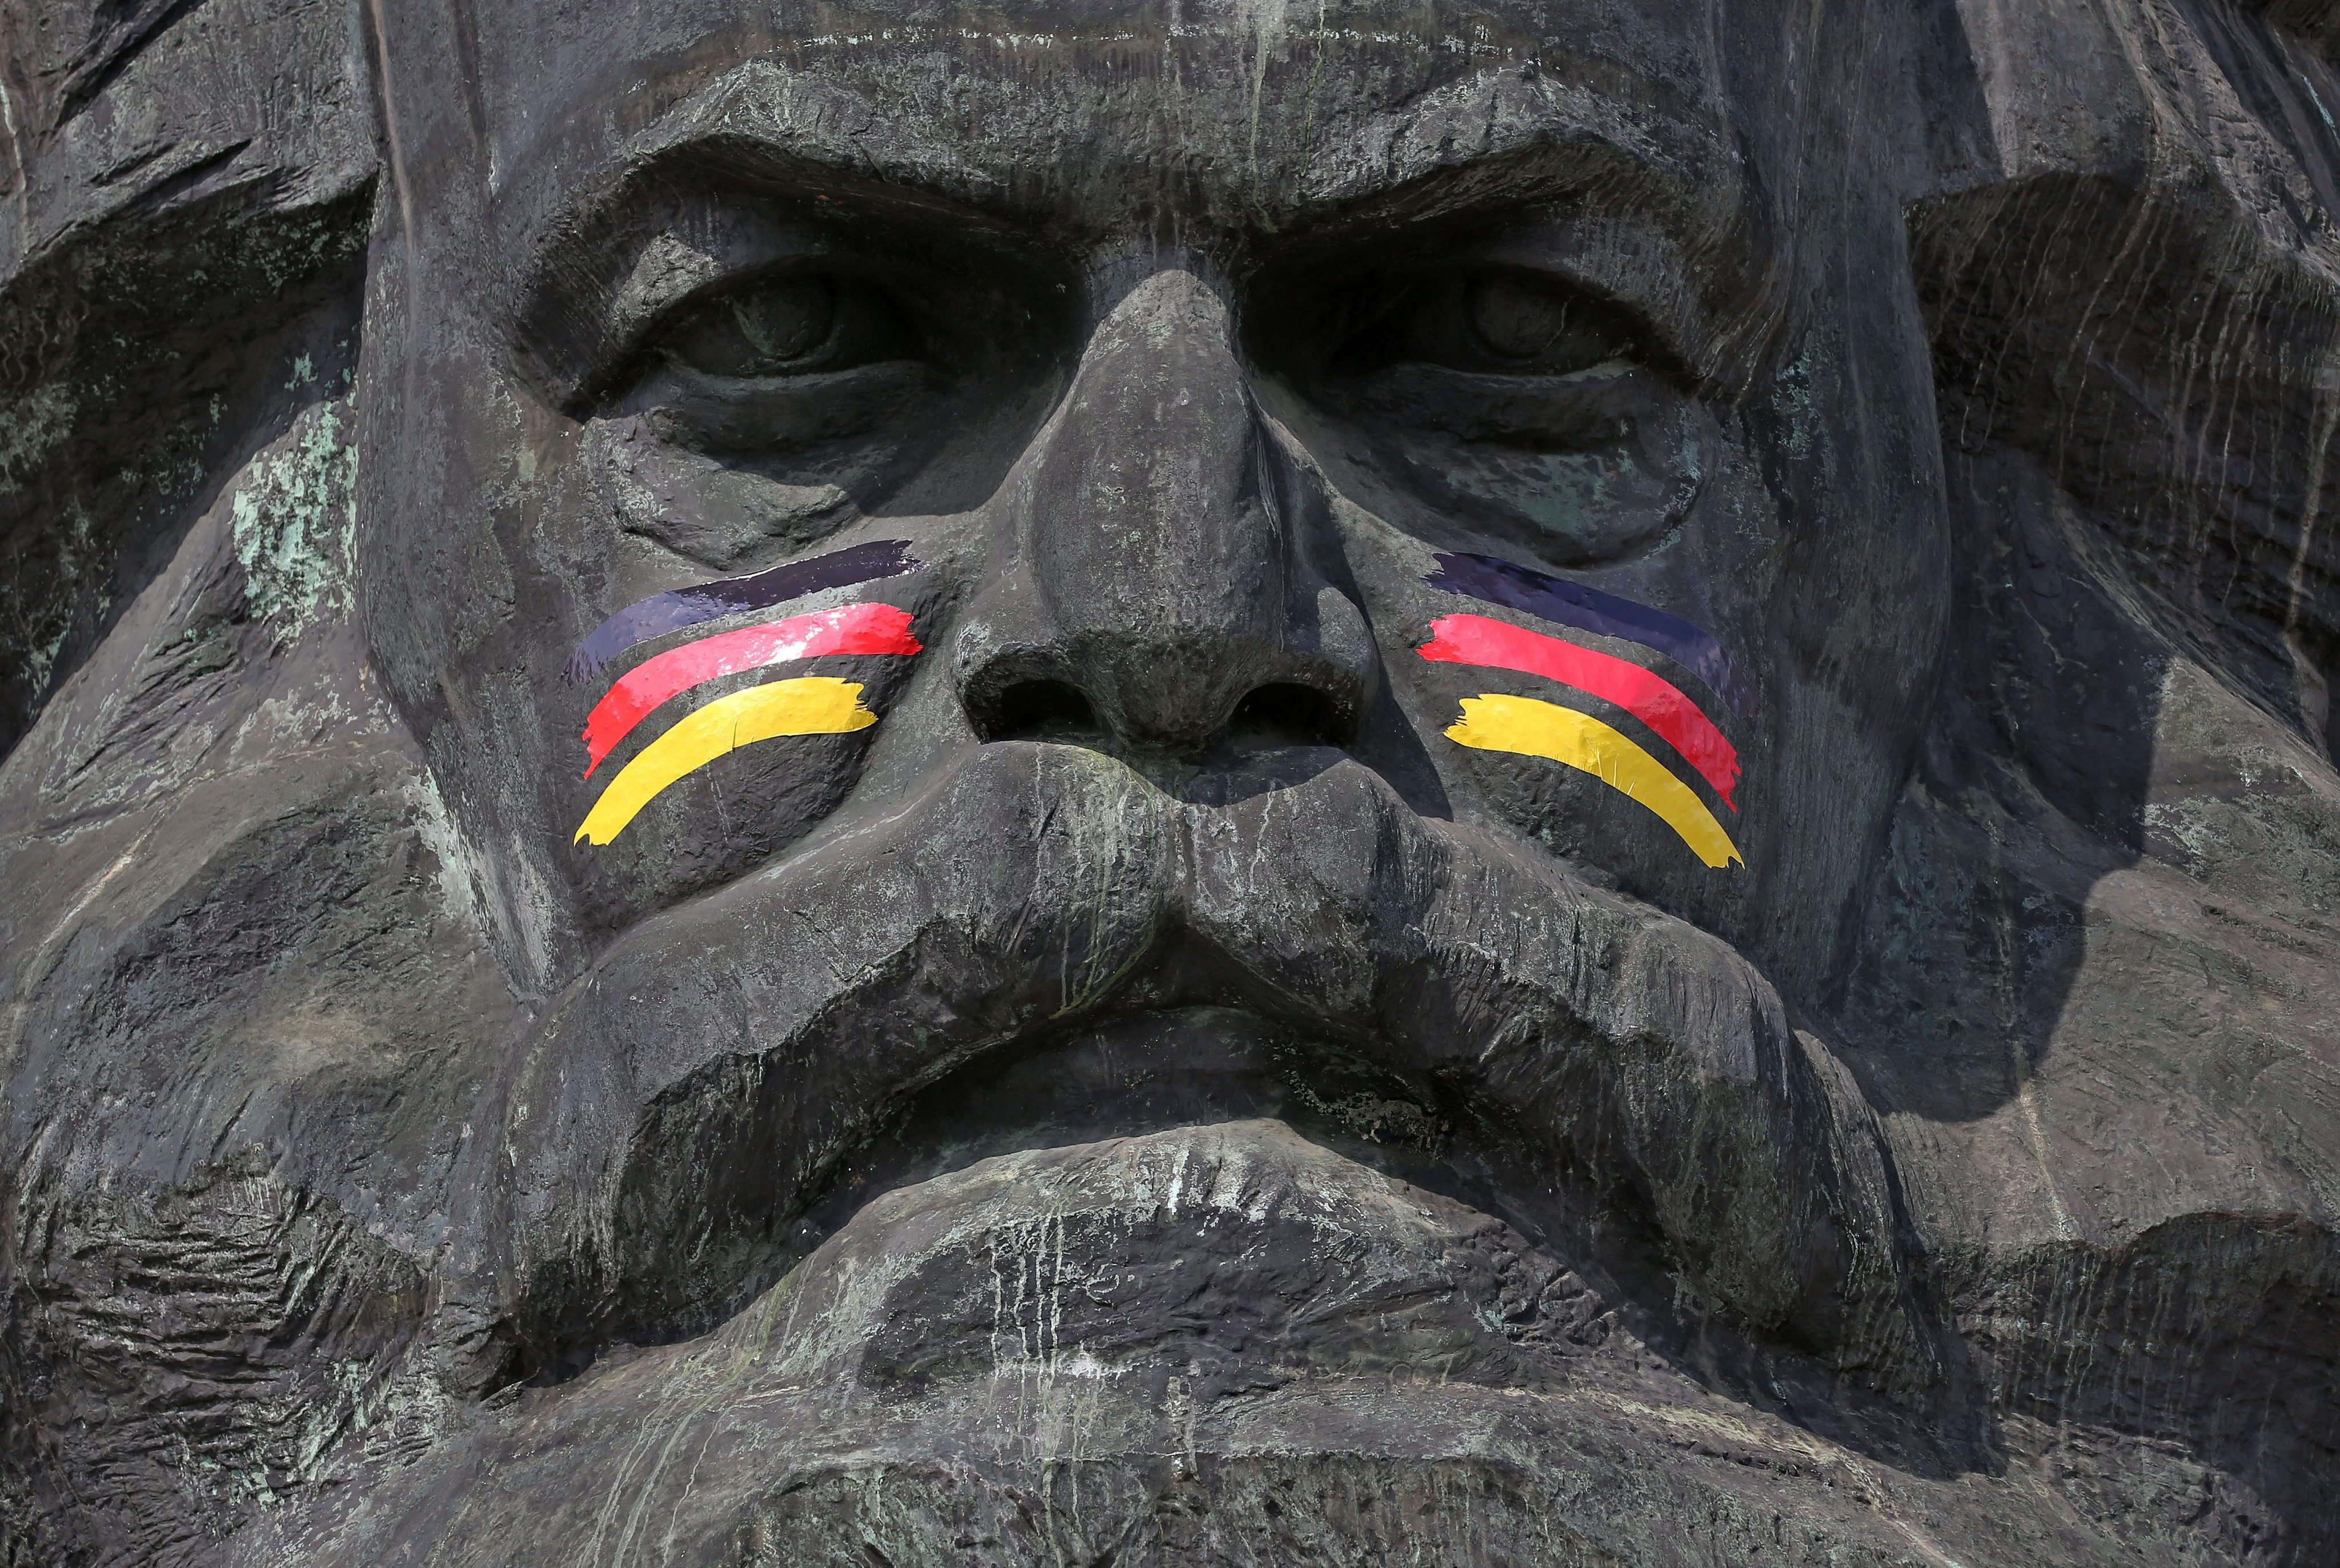 The Karl Marx monument has been decorated with German flags painted on his cheeks in Chemnitz, Germany on June 16, 2014.